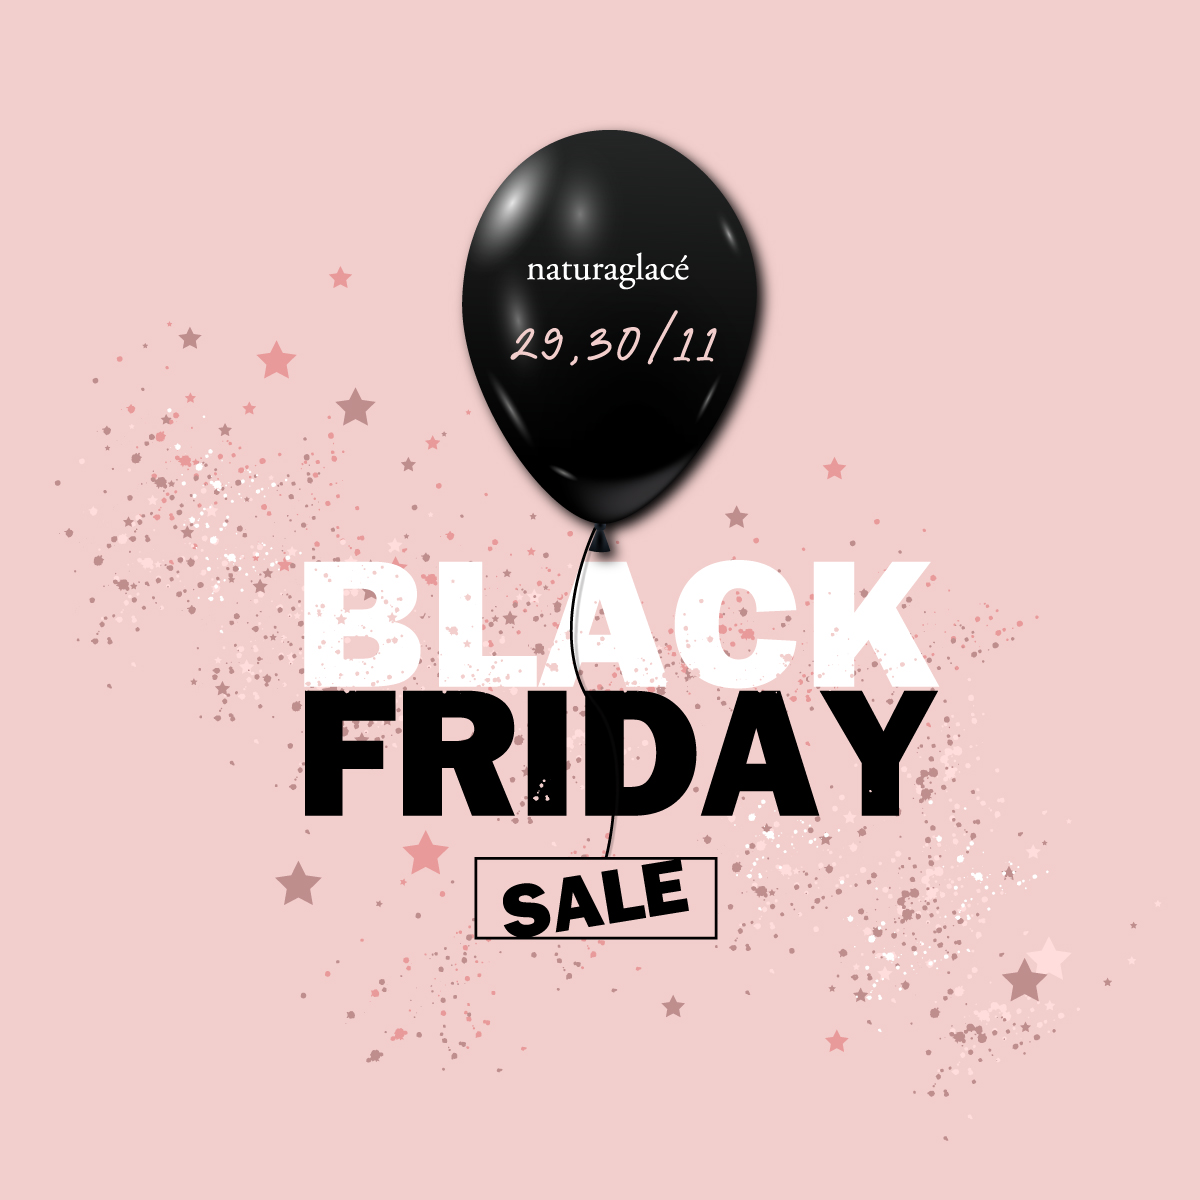 BLACK FRIDAY - NATURAGALCÉ MUA 1 TẶNG 1